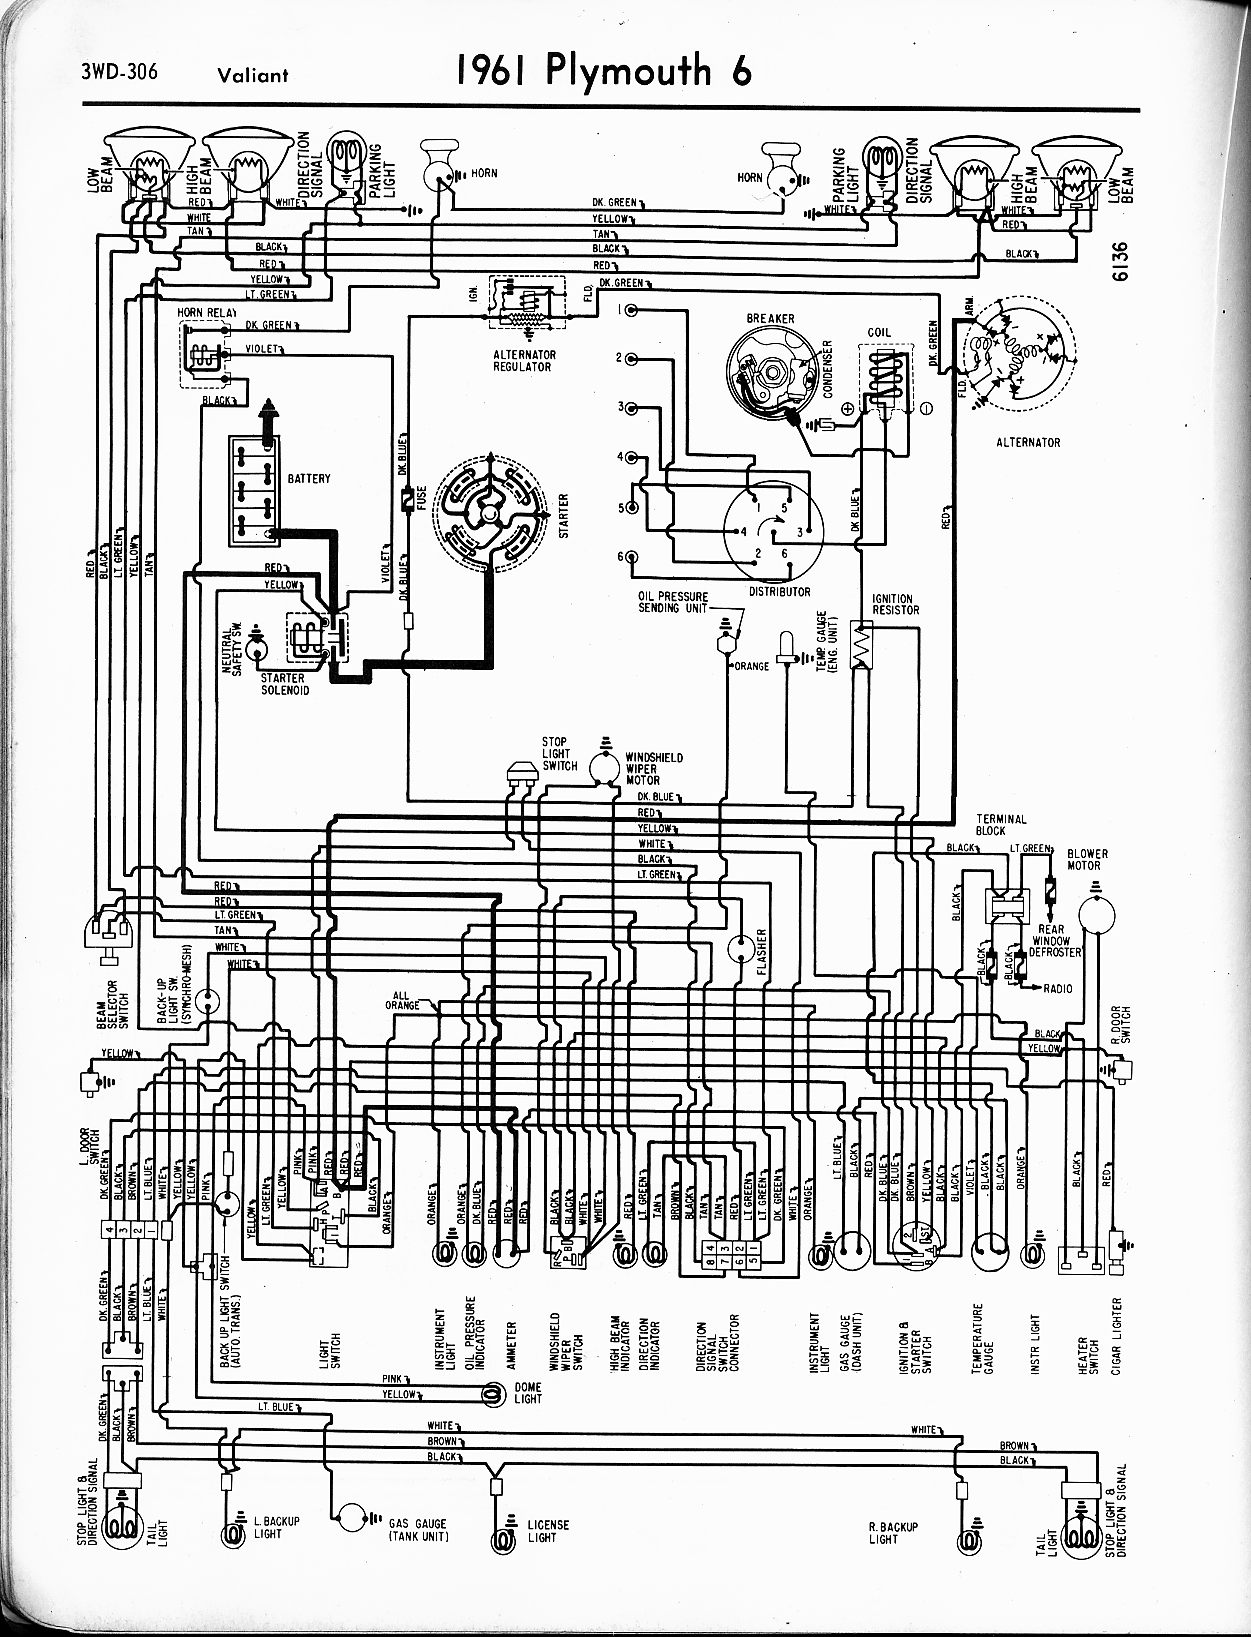 wiring diagrams of 1962 plymouth 6 valiant wiring diagram data